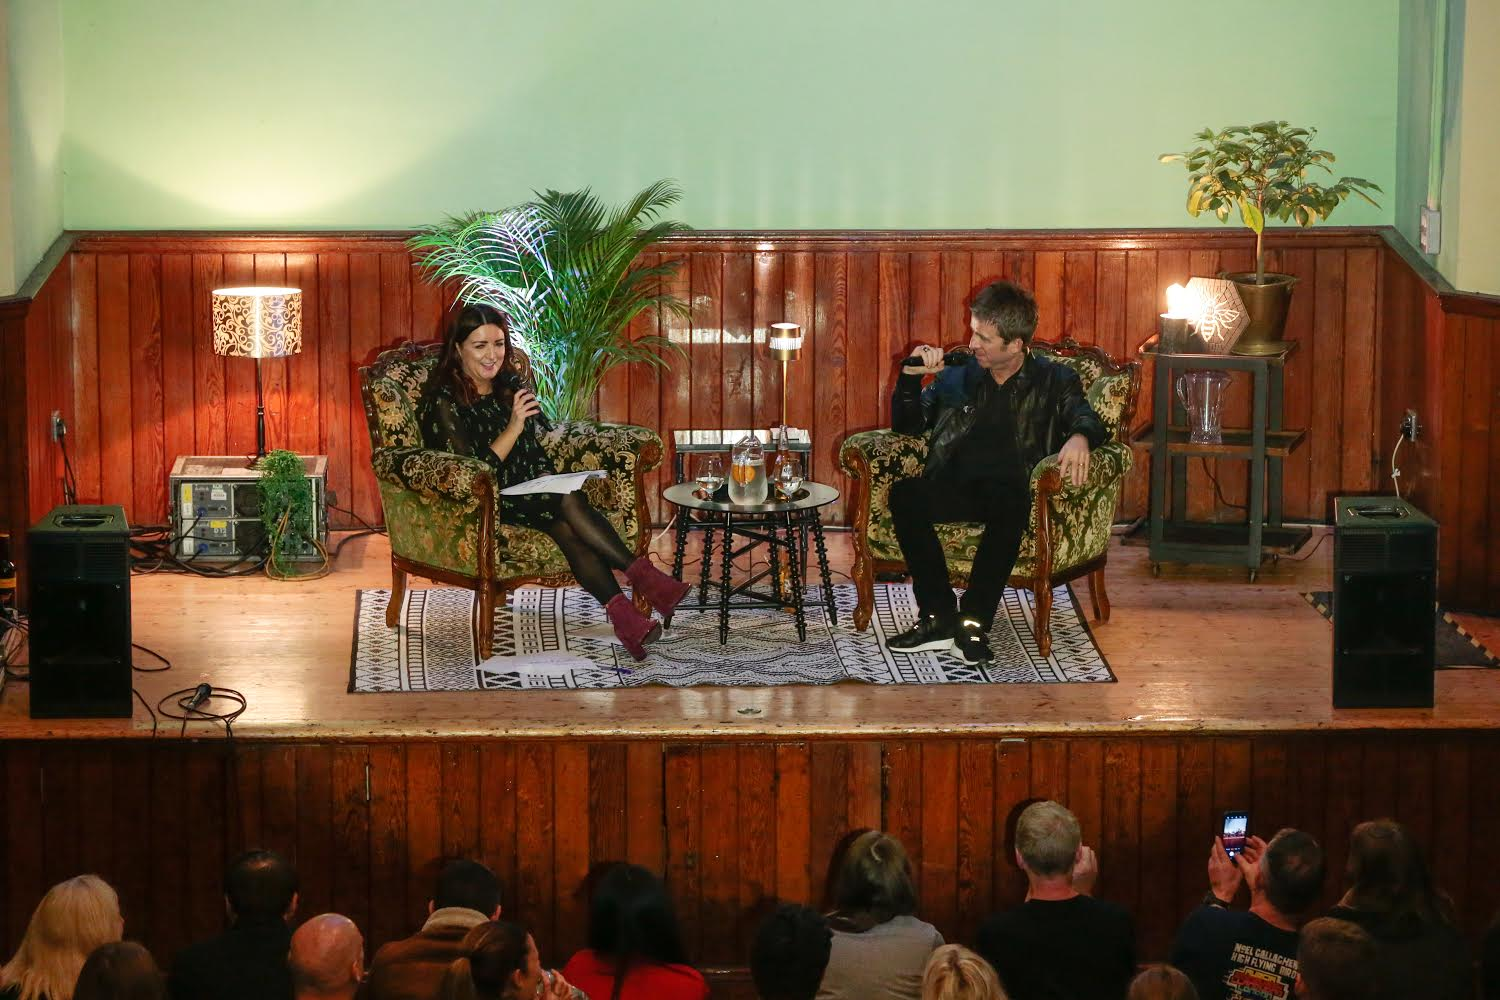 Noel Gallagher in conversation as Salford Lads Club – full report on event that raised 8 grand for charity